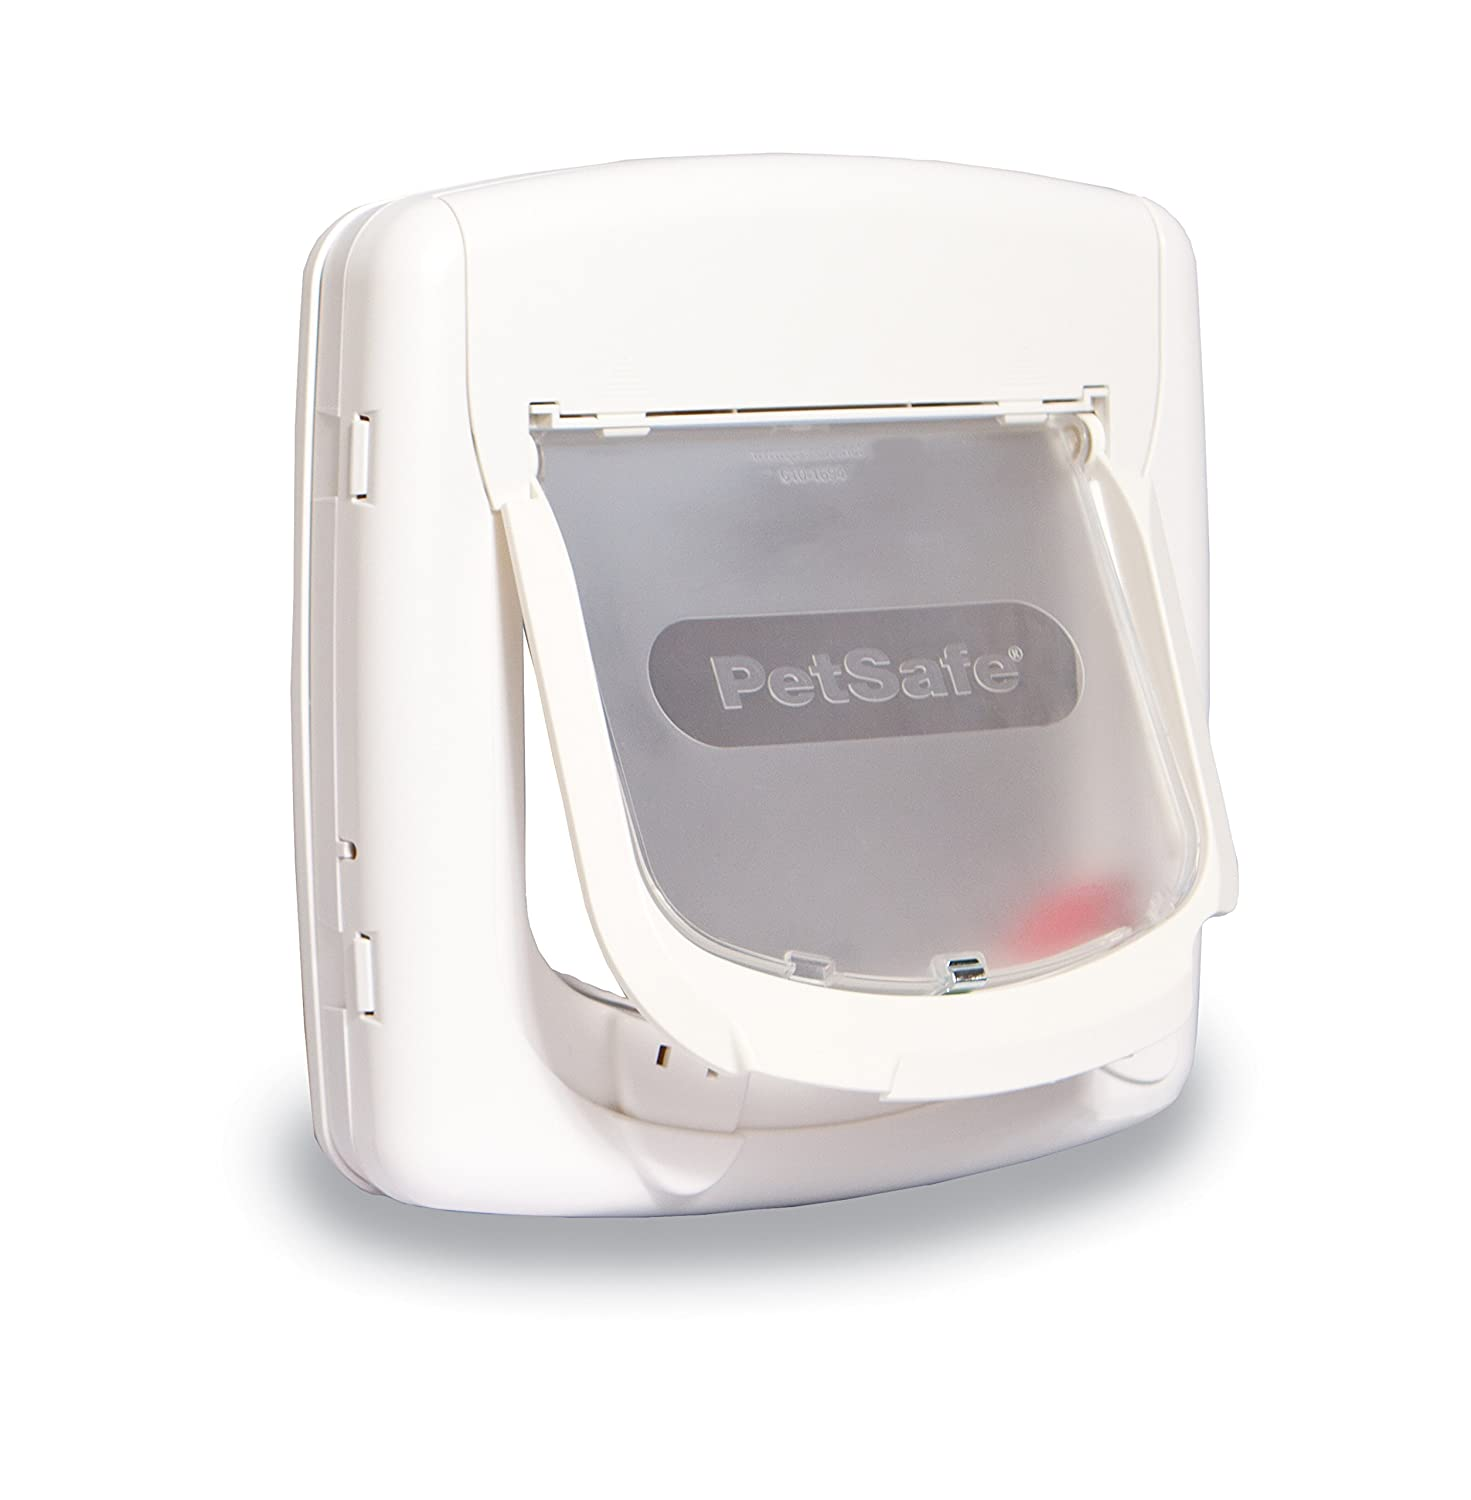 PetSafe 4-Way Locking Cat Flap